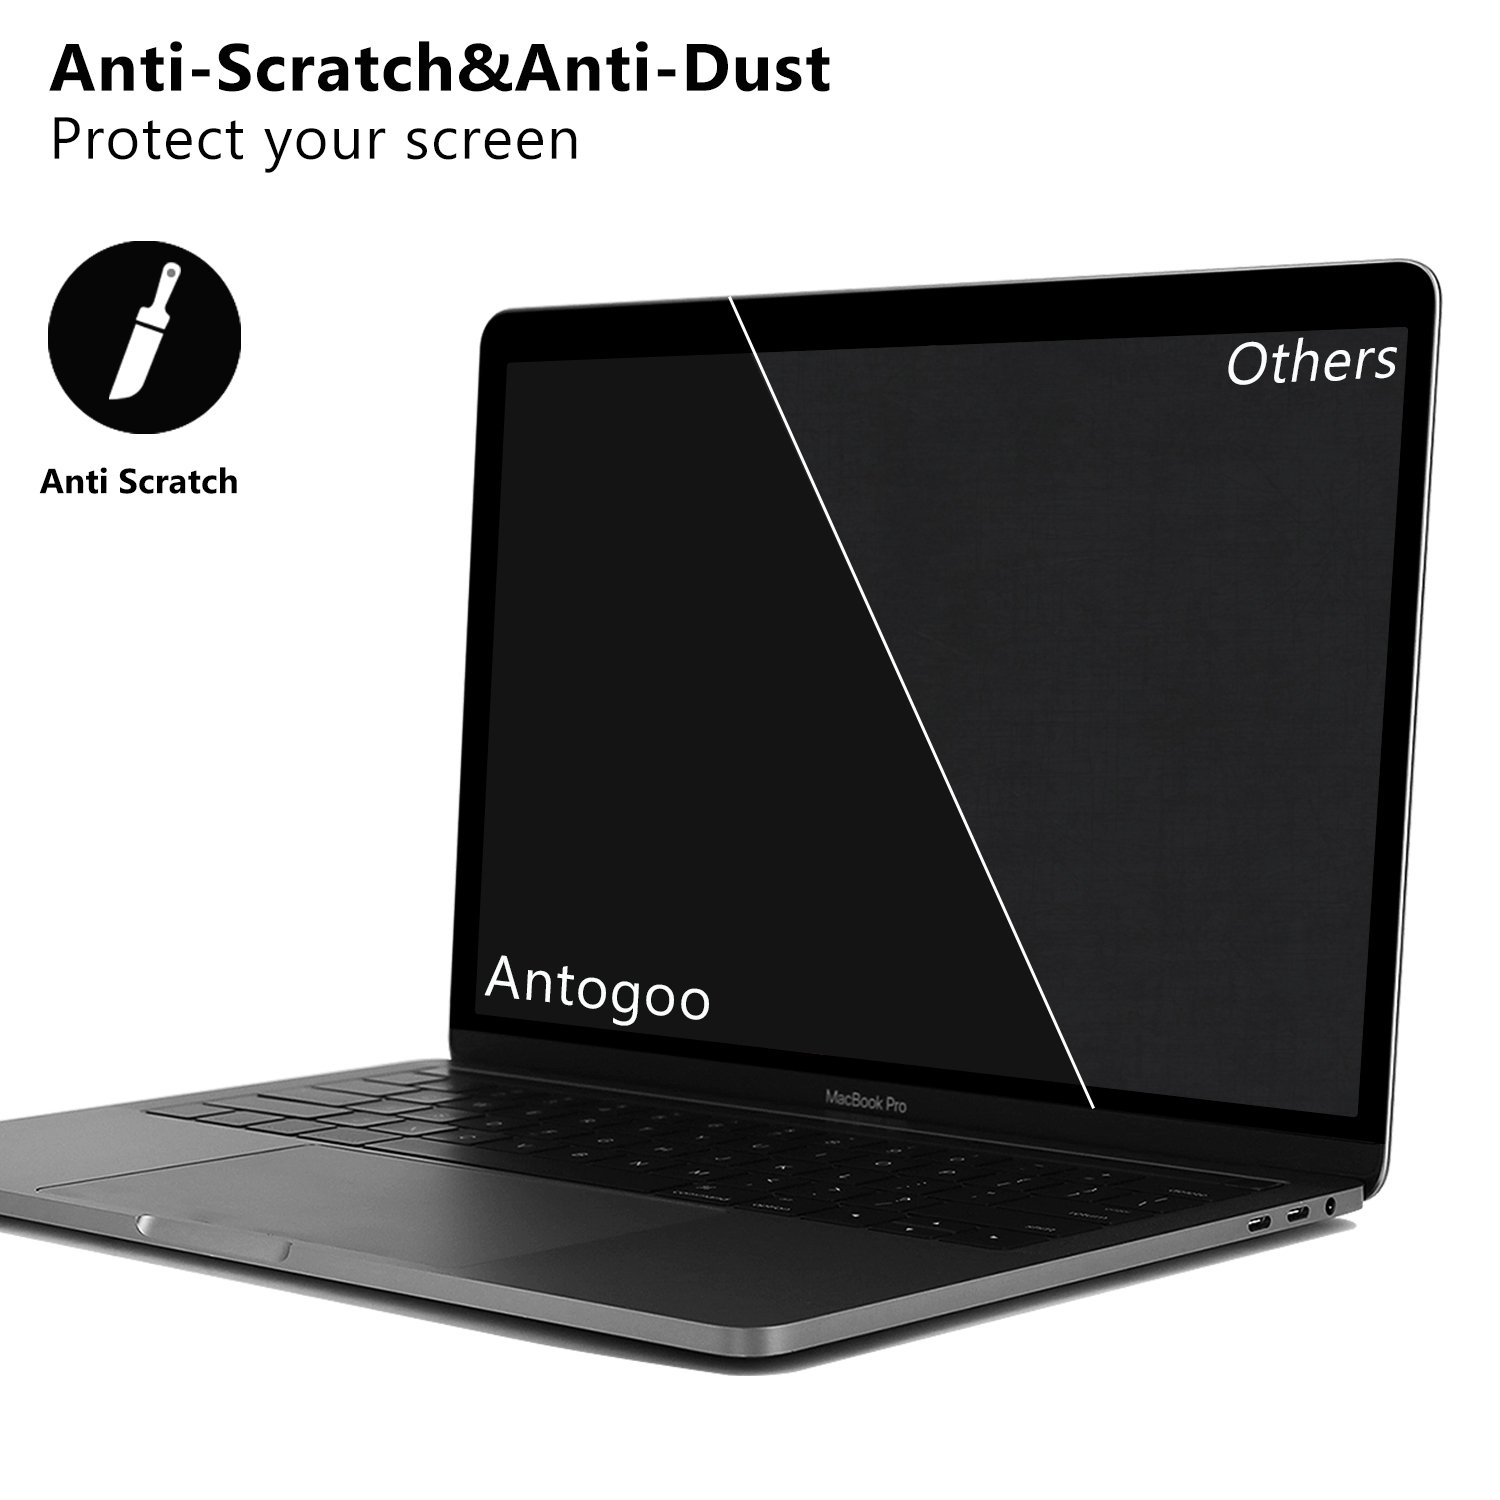 17.3 Inch Anti Glare Screen Protector for 17.3 Inch with 16:9 Aspect Ratio Dell//Asus HP Laptop 2 PACK Samsung//Aoc Acer//ViewSonic